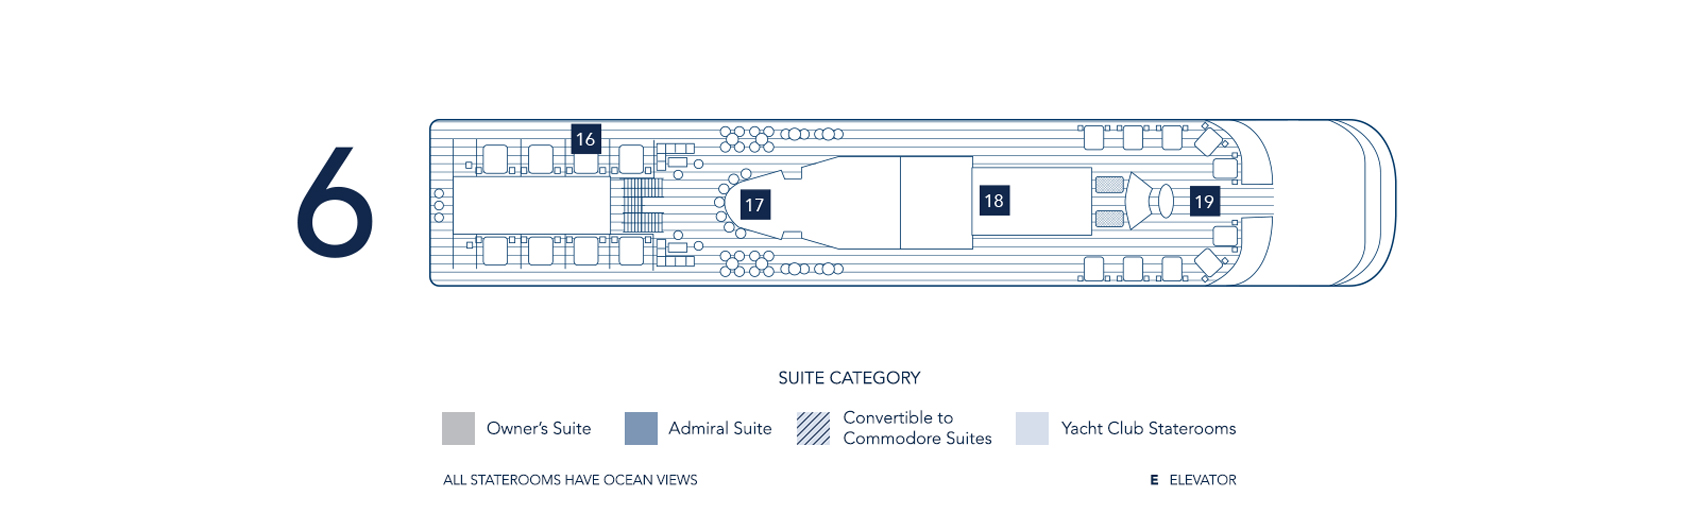 Seadream S Luxury Yacht Deck Plans Location Guide